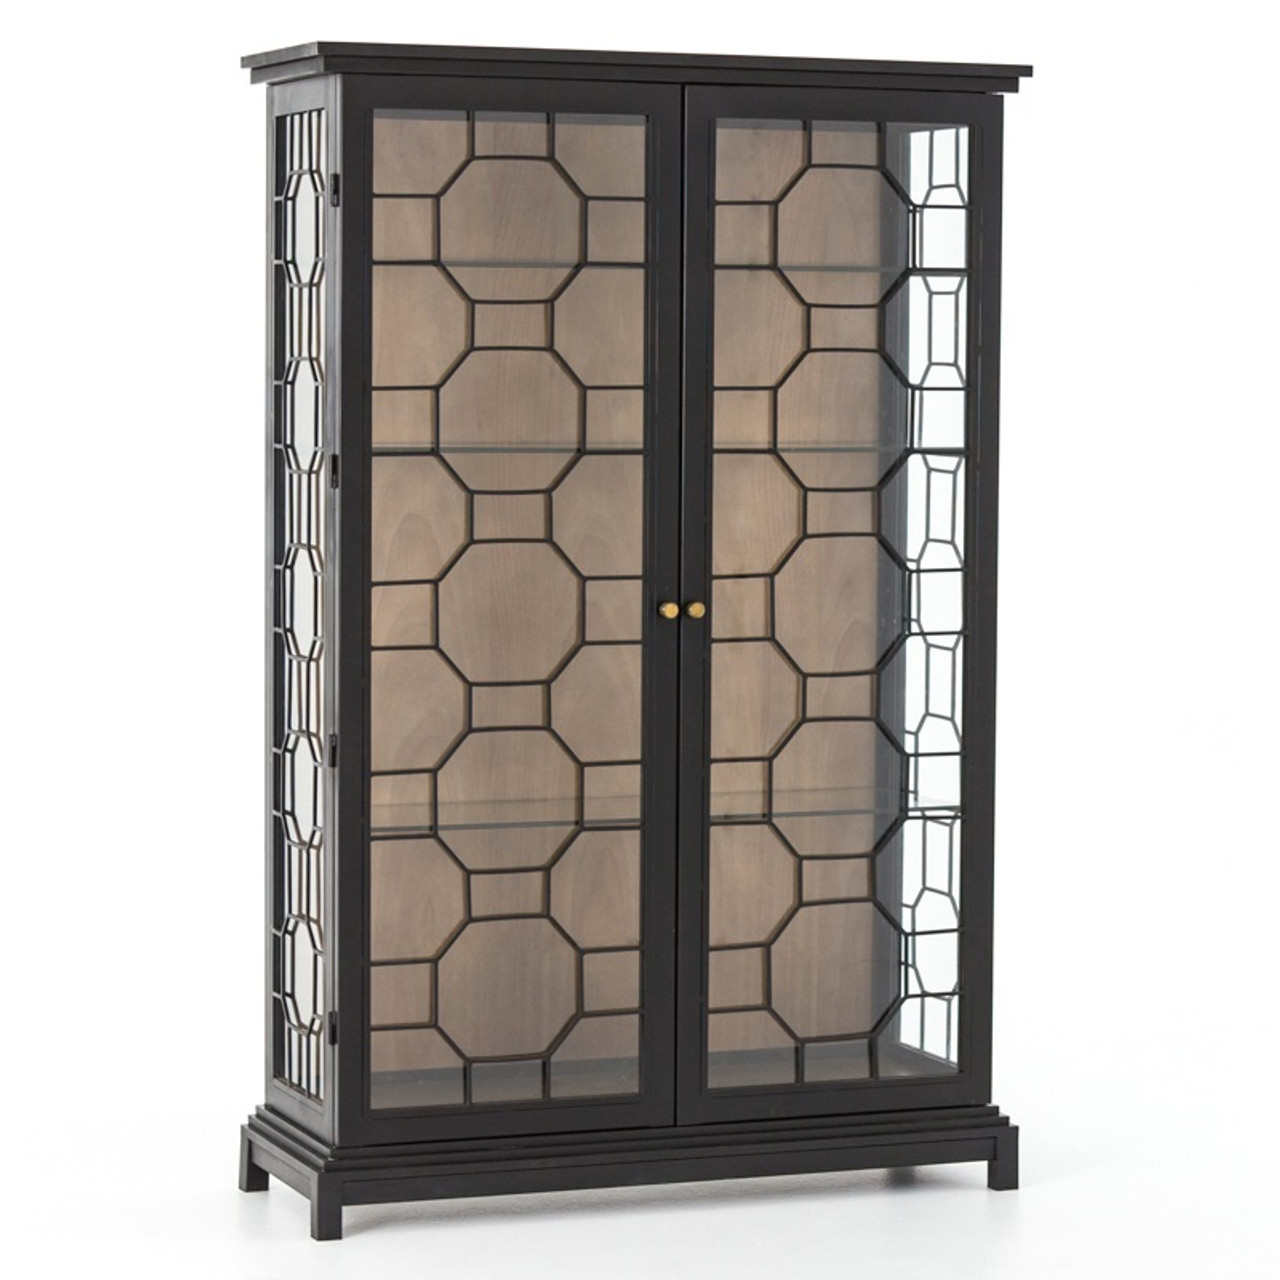 Anna Black Iron Frame Glass Door Display Etagere Cabinet Zin Home